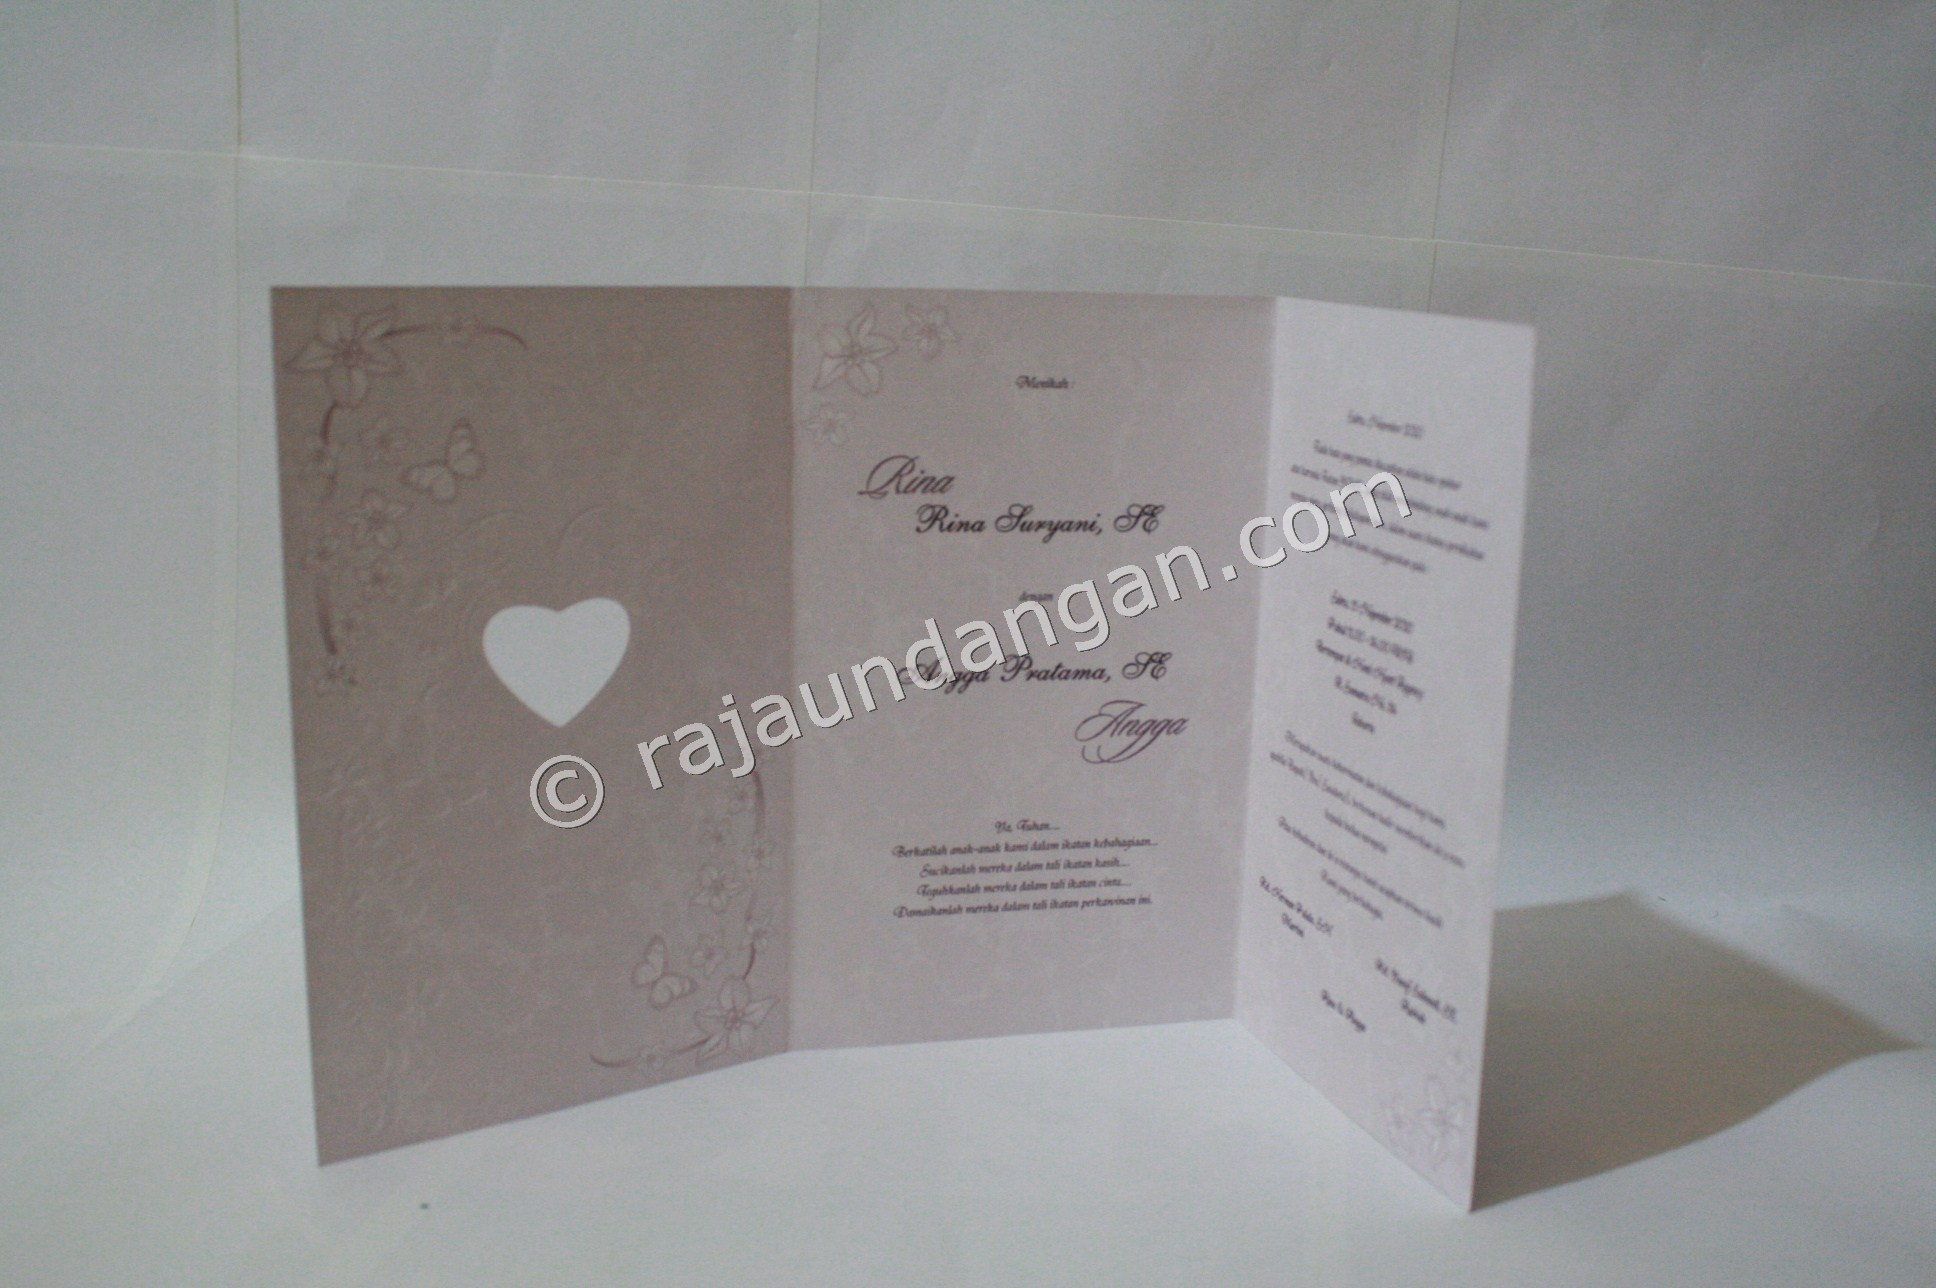 Undangan Pernikahan Softcover ED 26 2 - Membuat Wedding Invitations Simple di Dr. Sutomo